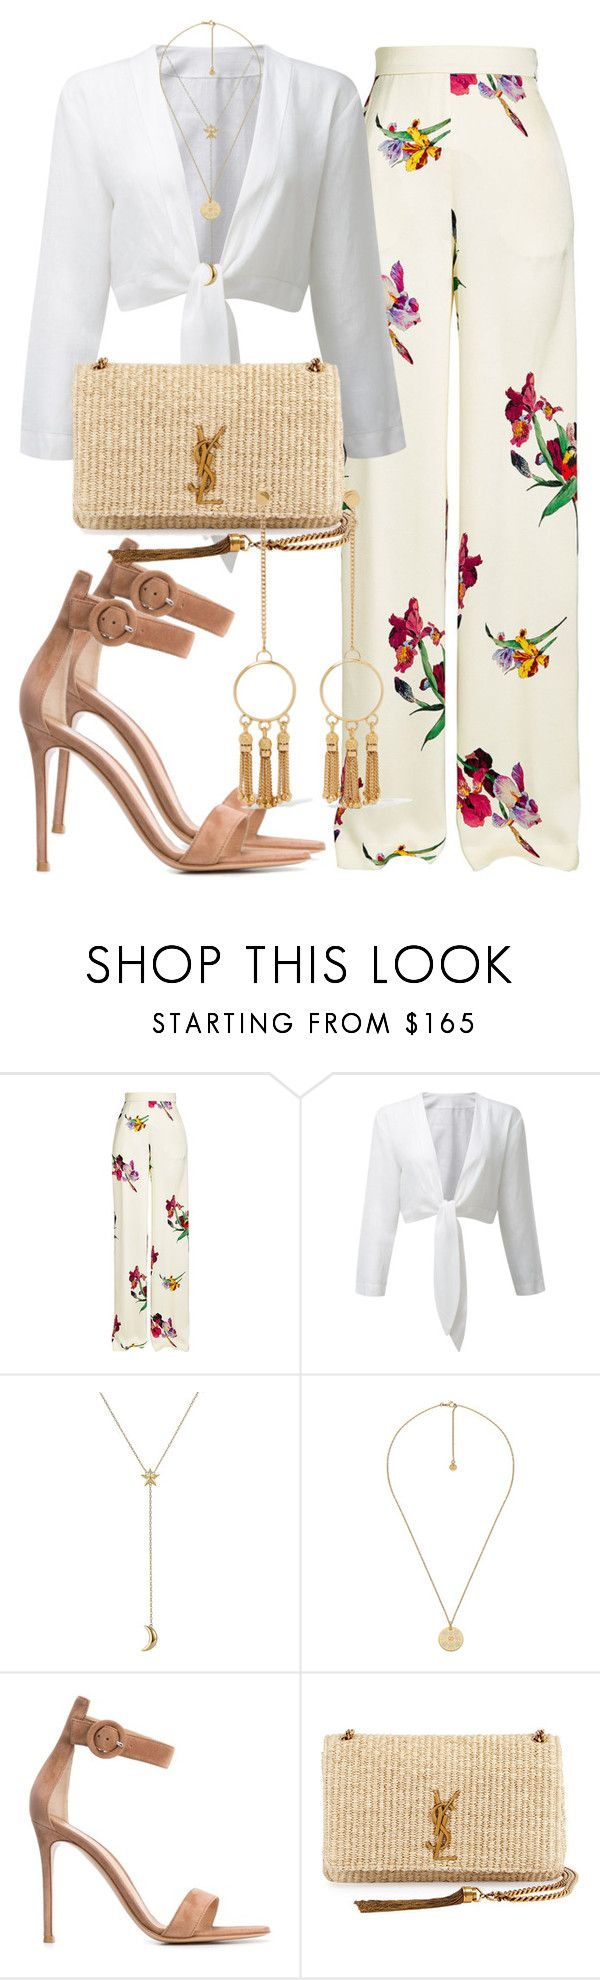 """""""2456"""" by mariandradde ❤ liked on Polyvore featuring Etro, Pamela Love, Gucci, Gianvito Rossi, Yves Saint Laurent, Chloé, saintlaurent, yvessaintlaurent and lisamariefernandez"""